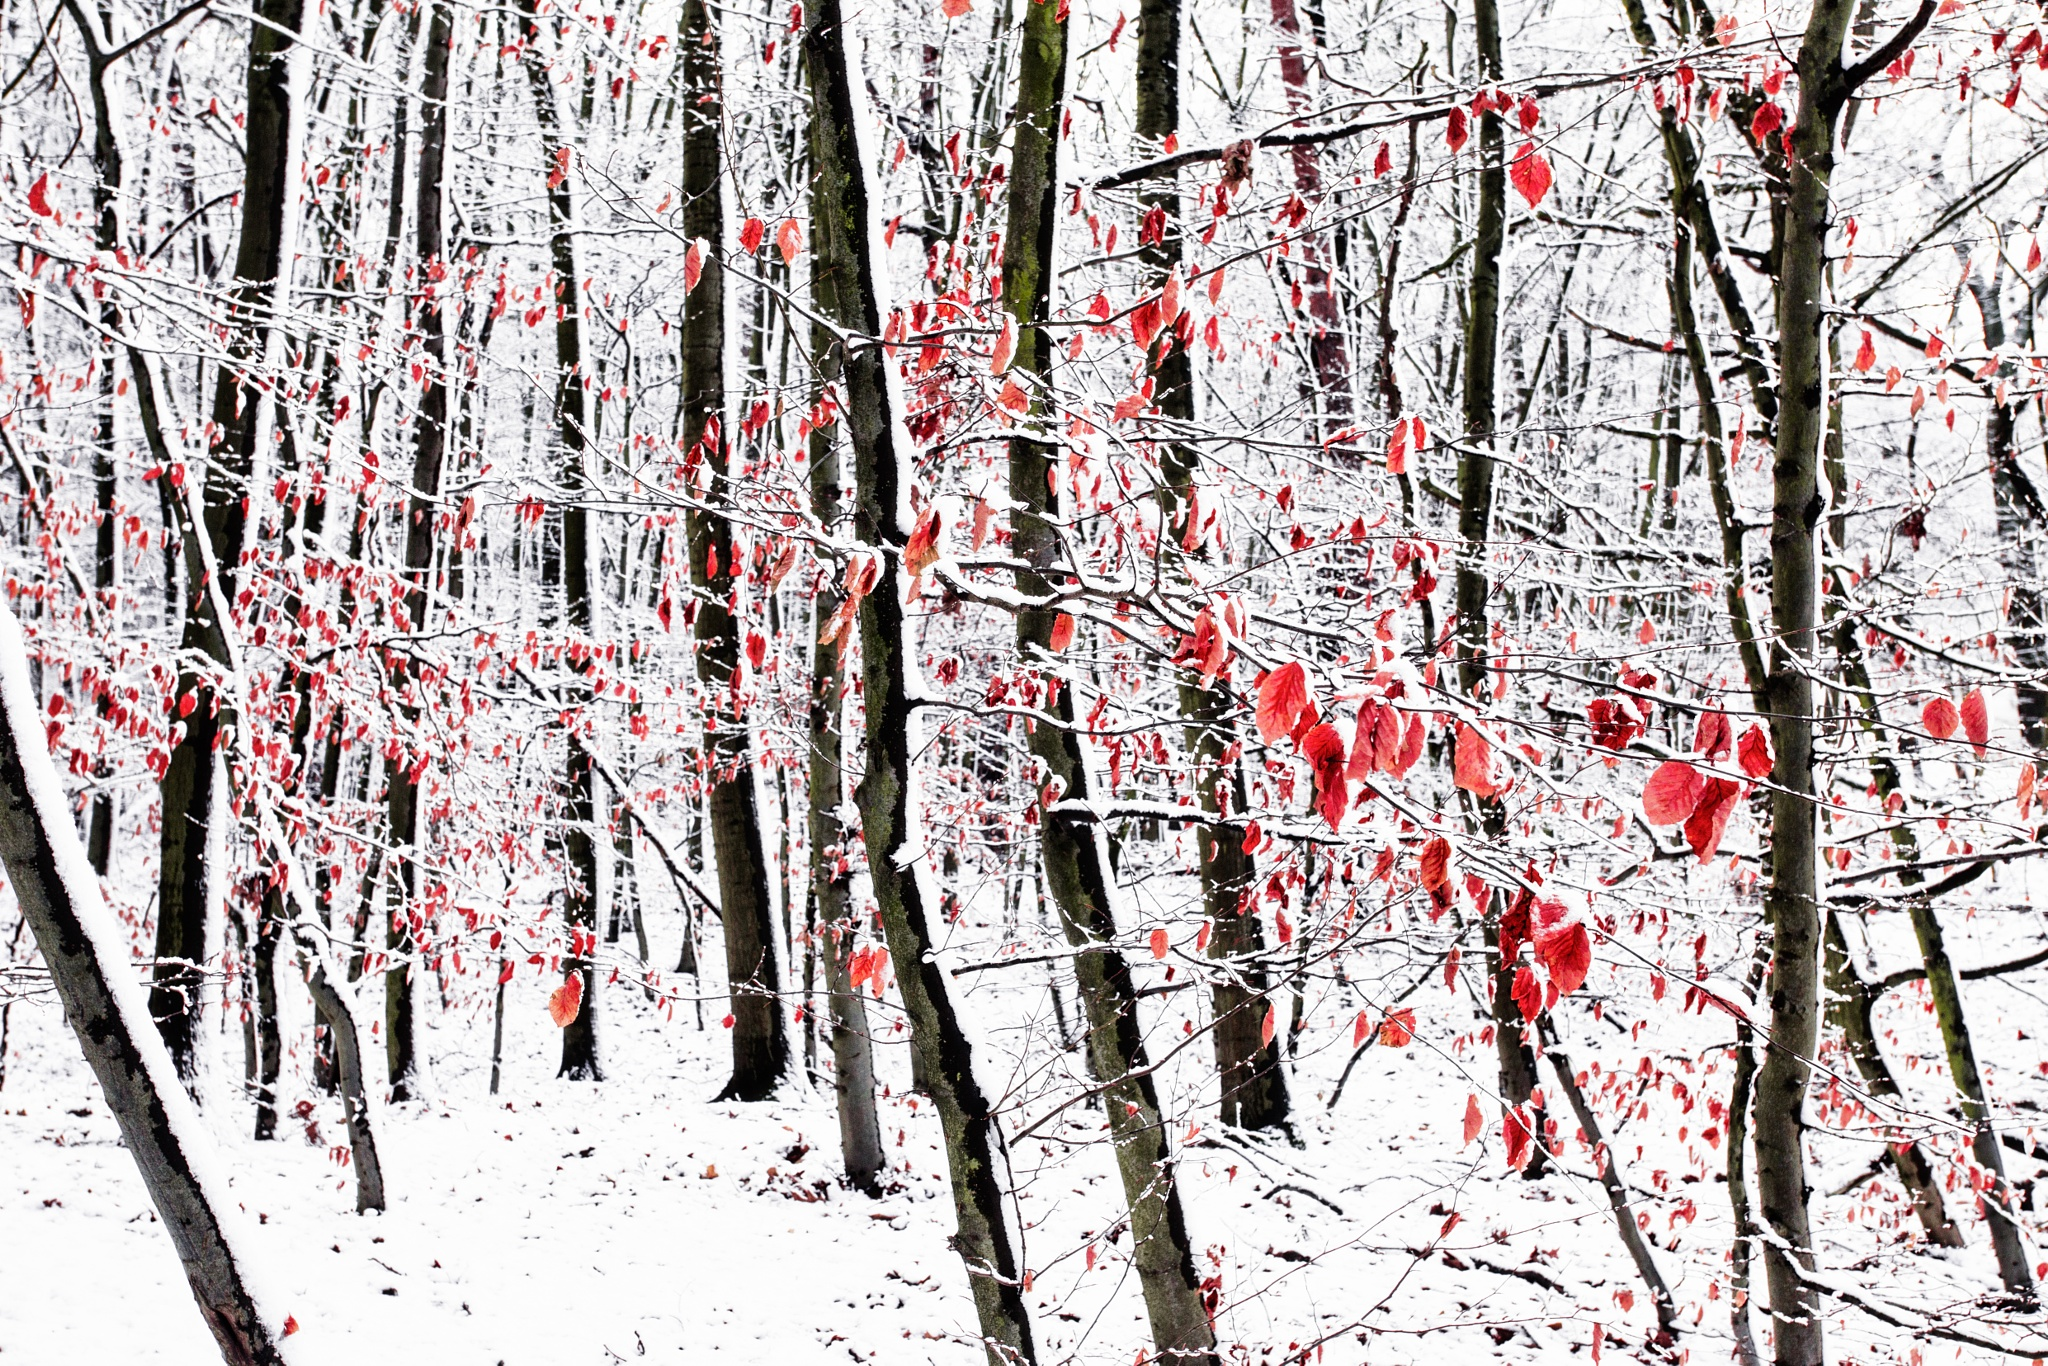 Bloody Winter Leaves by Jens Unger